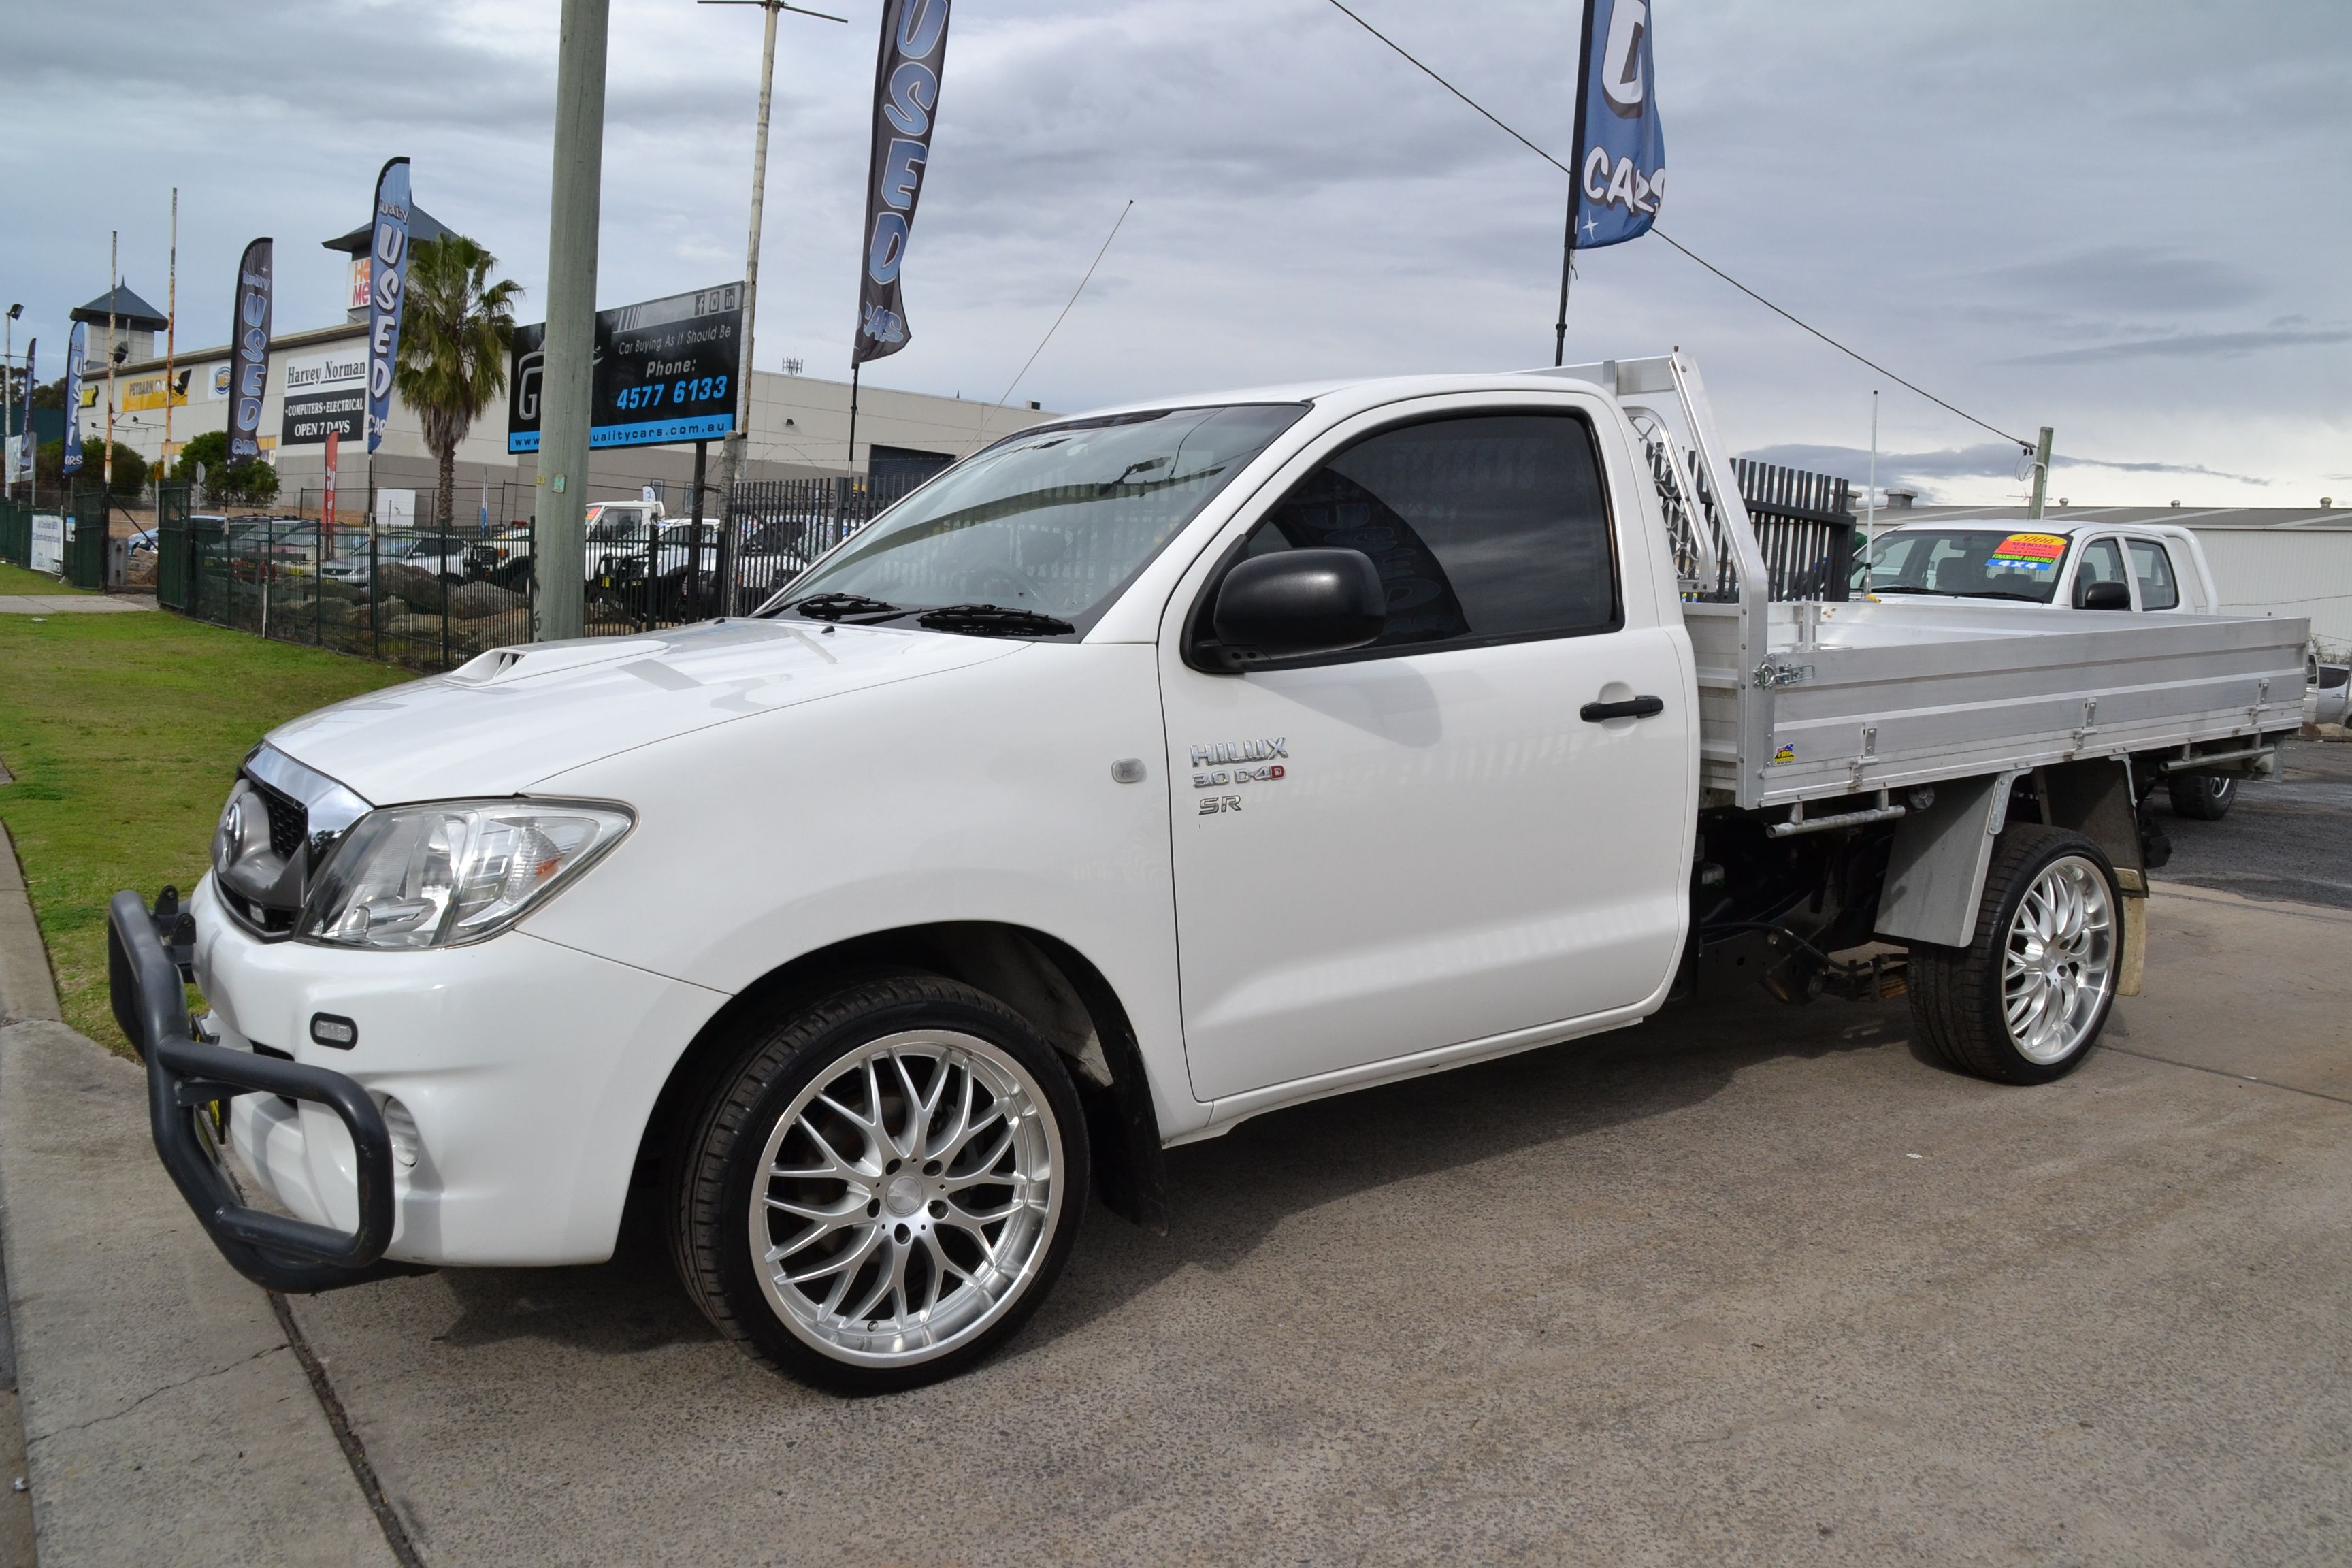 2009 Toyota Hilux SR Cab Chassis. 3 Groves Ave, Mulgrave